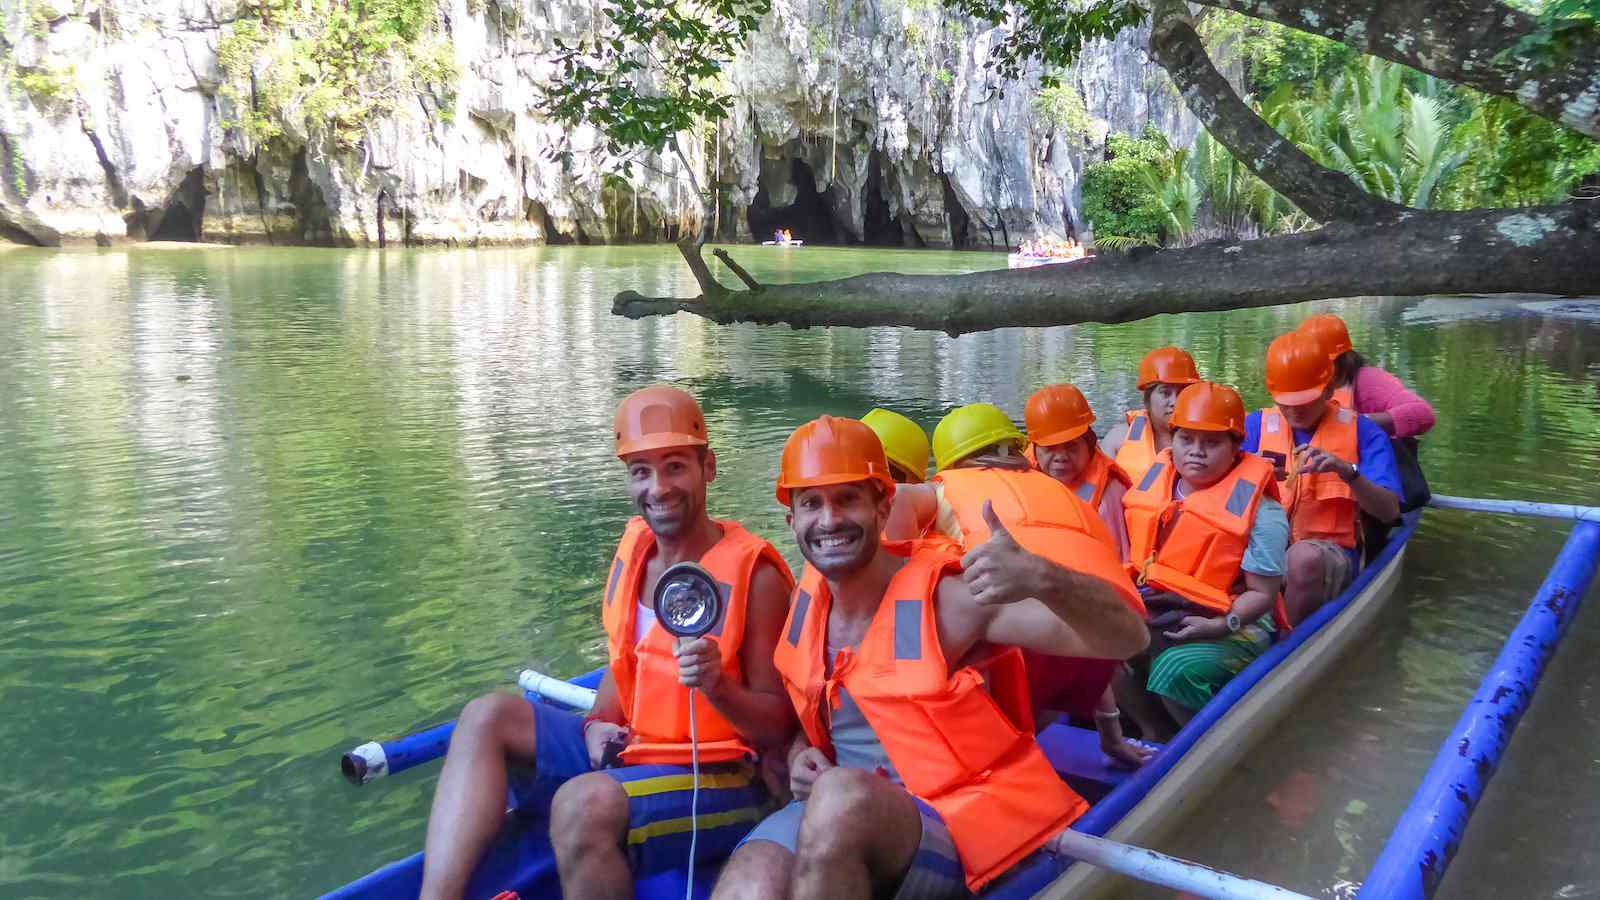 The Puerto Princesa Subterranean River is the longest underground river in the world and it can be found in the Philippines